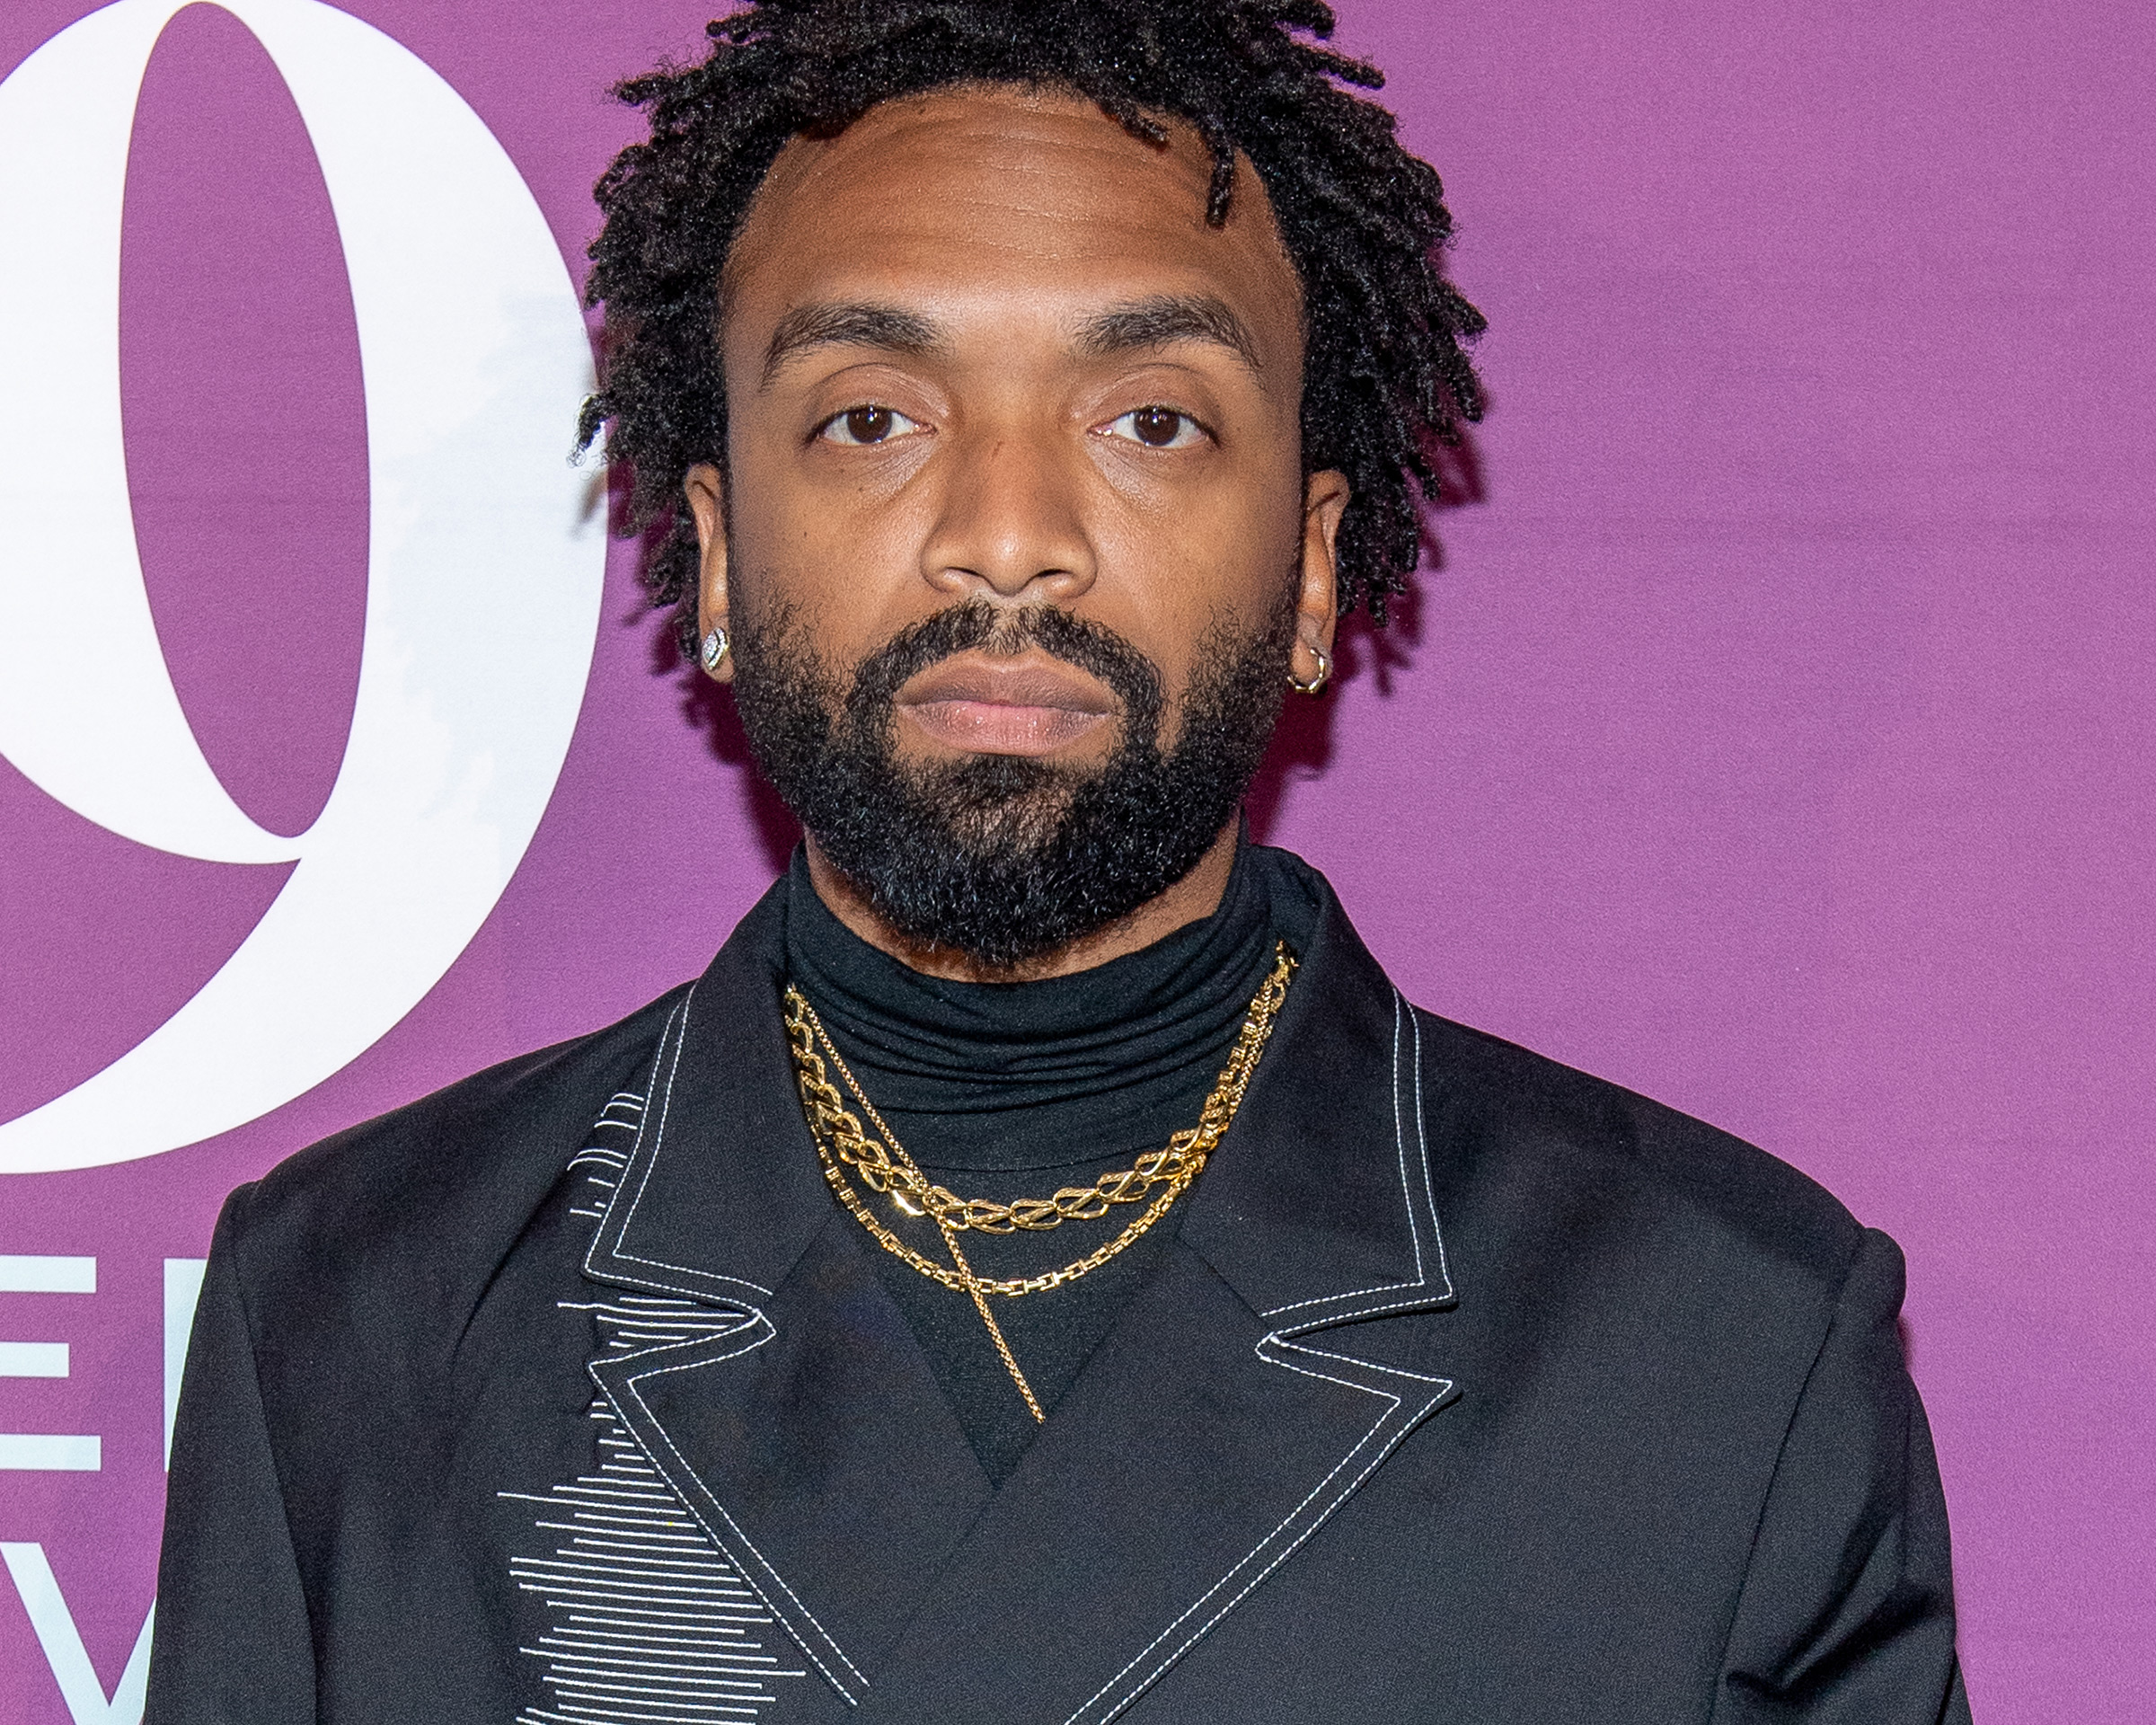 Kerby Jean-Raymond at the 2019 FN Achievement Awards wearing his Pyer Moss suit with John Hardy gold chain necklaces, a diamond Cuban link ring and a white and yellow diamond ring by Shelley & Co